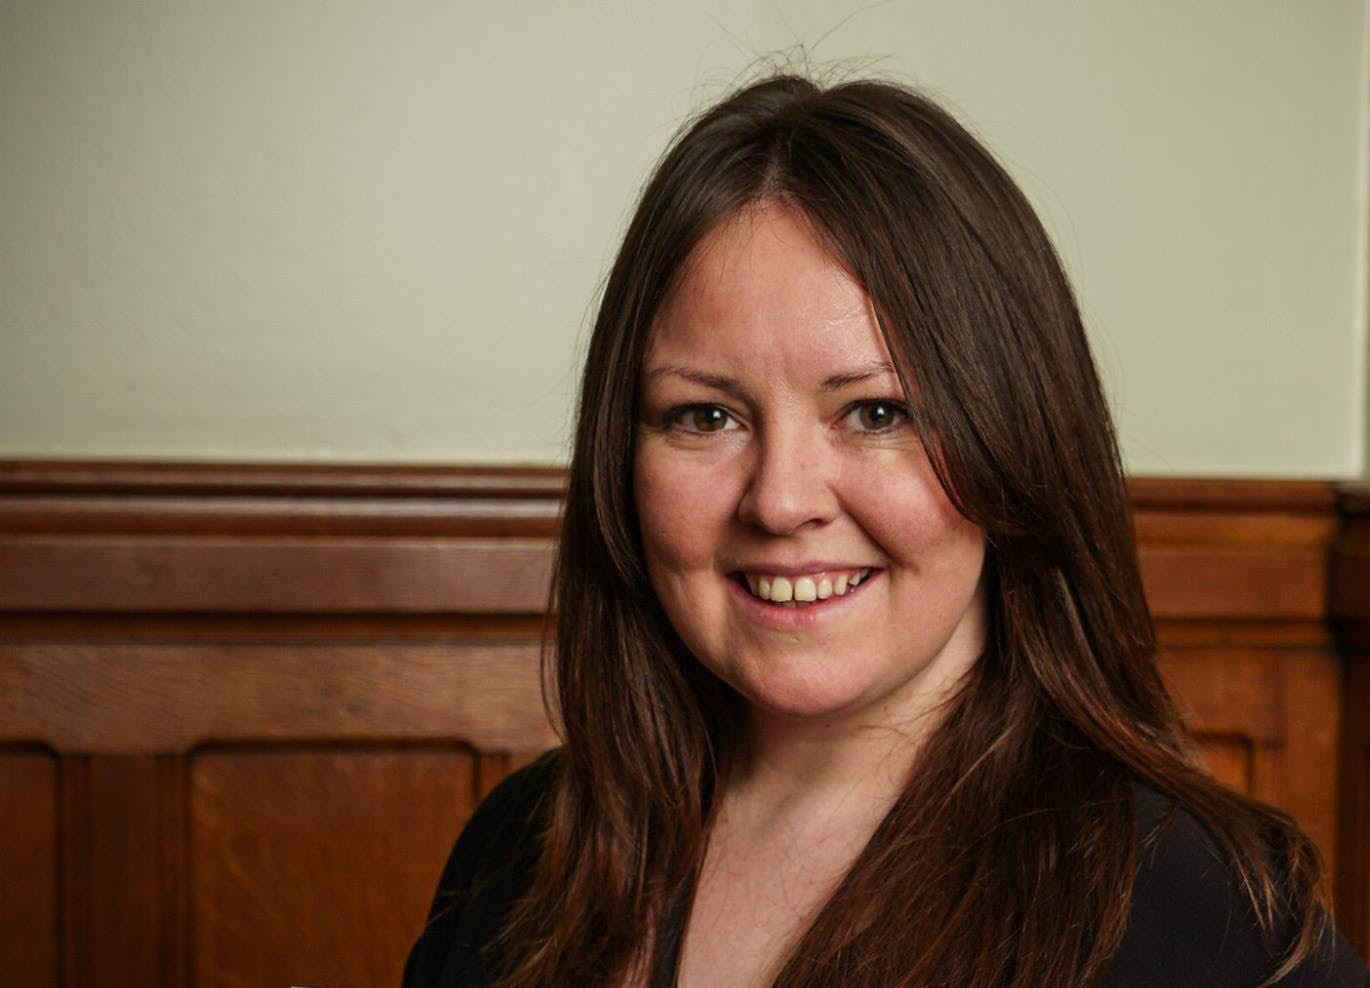 Natalie McGarry Independent MP for Glasgow East